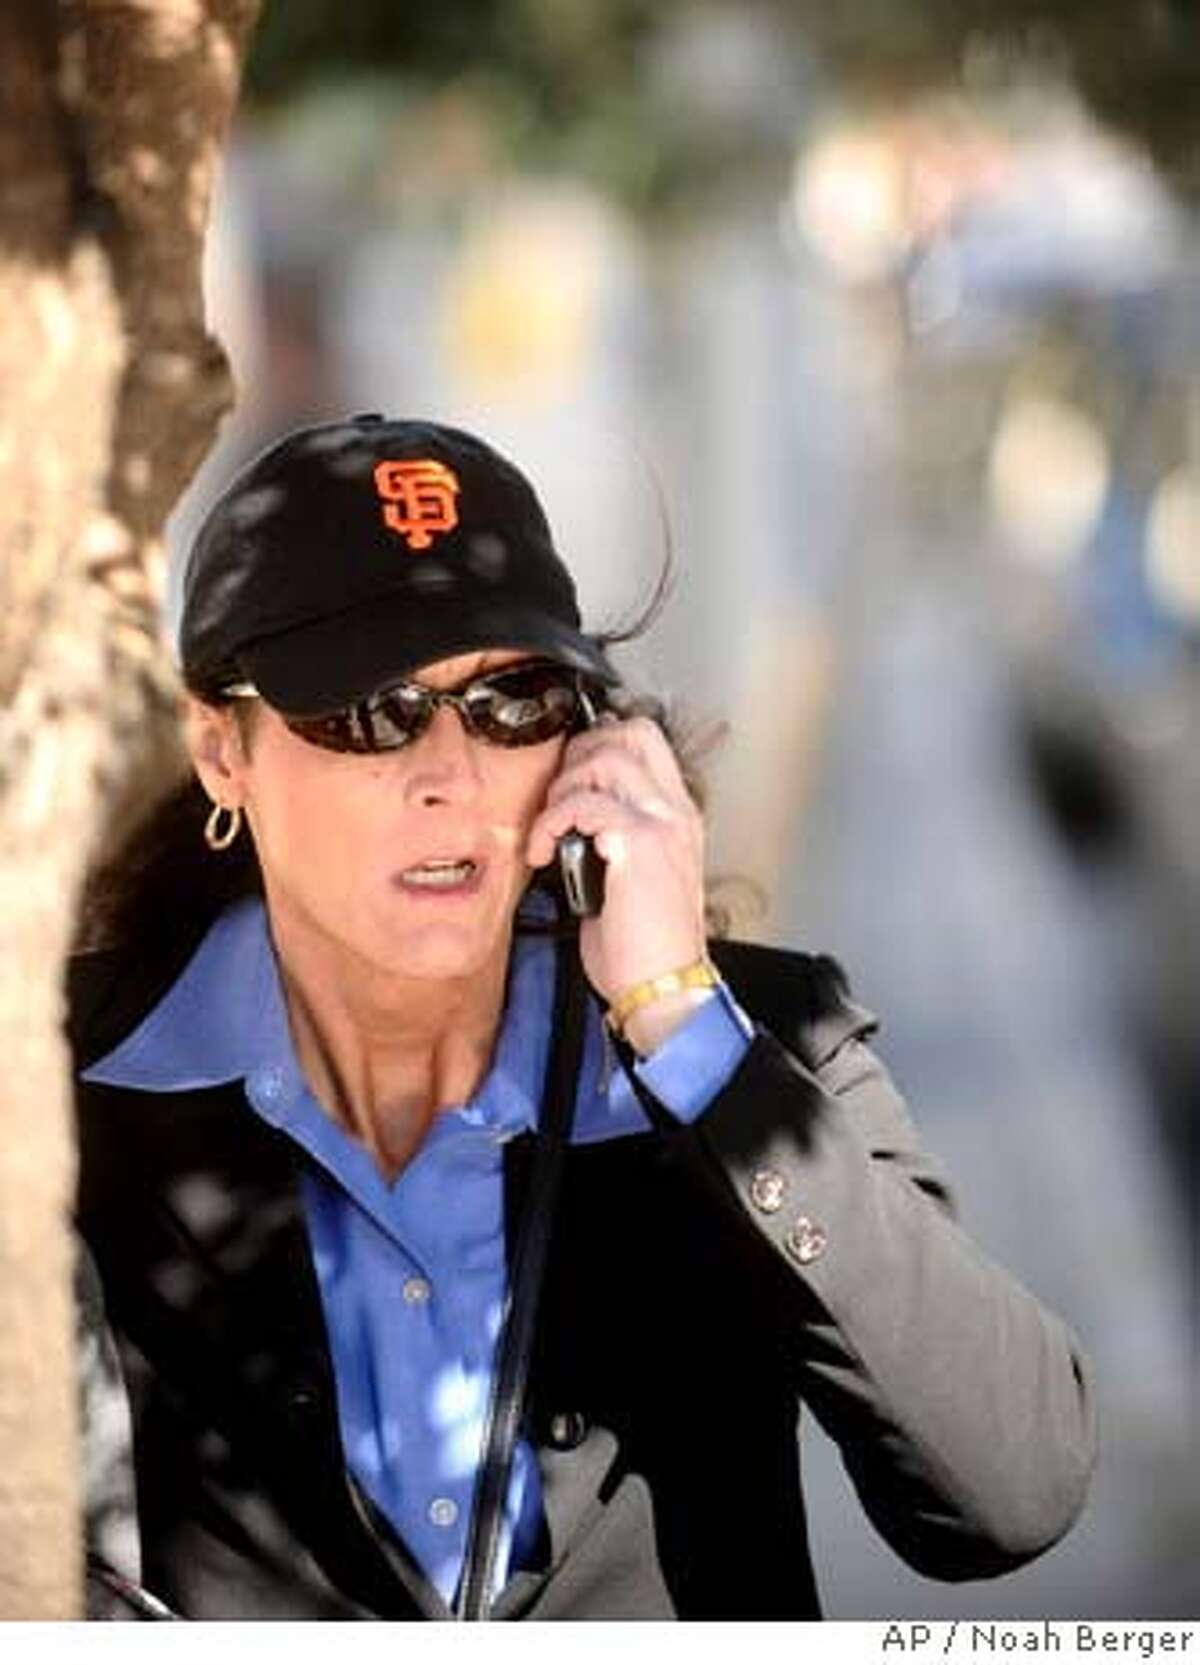 ###Live Caption:Former Olympic cyclist Tammy Thomas talks on her cell phone as she leaves the federal courthouse in San Francisco on Tuesday, March 25, 2008. Thomas is charged with perjury and obstruction of justice for allegedly lying to a federal grand jury investigating a steroid ring that spanned many sports. (AP Photo/Noah Berger)###Caption History:Former Olympic cyclist Tammy Thomas talks on her cell phone as she leaves the federal courthouse in San Francisco on Tuesday, March 25, 2008. Thomas is charged with perjury and obstruction of justice for allegedly lying to a federal grand jury investigating a steroid ring that spanned many sports. (AP Photo/Noah Berger) Ran on: 03-26-2008 Banned cyclist Tammy Thomas, shown outside court in San Francisco, is charged with perjury and obstruction of justice. Ran on: 03-26-2008 Banned cyclist Tammy Thomas, shown outside court in San Francisco, is charged with perjury and obstruction of justice.###Notes:Tammy Thomas###Special Instructions: